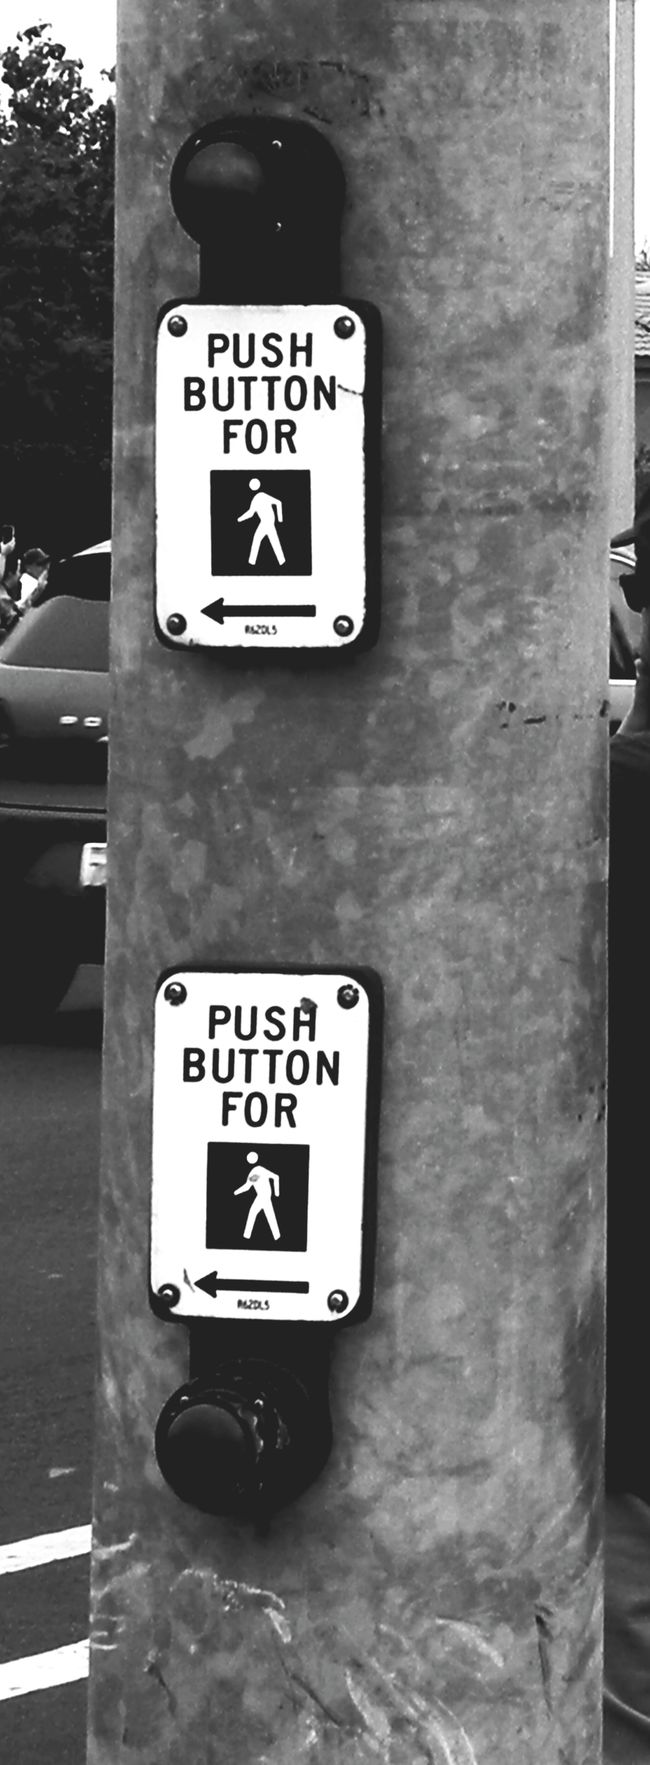 Two Is Better Than One Taking Photos Riverside California Black And White Photography Black And White Outdoors Crosswalk Sign Eyemphoto Monochrome Monochrome Photography